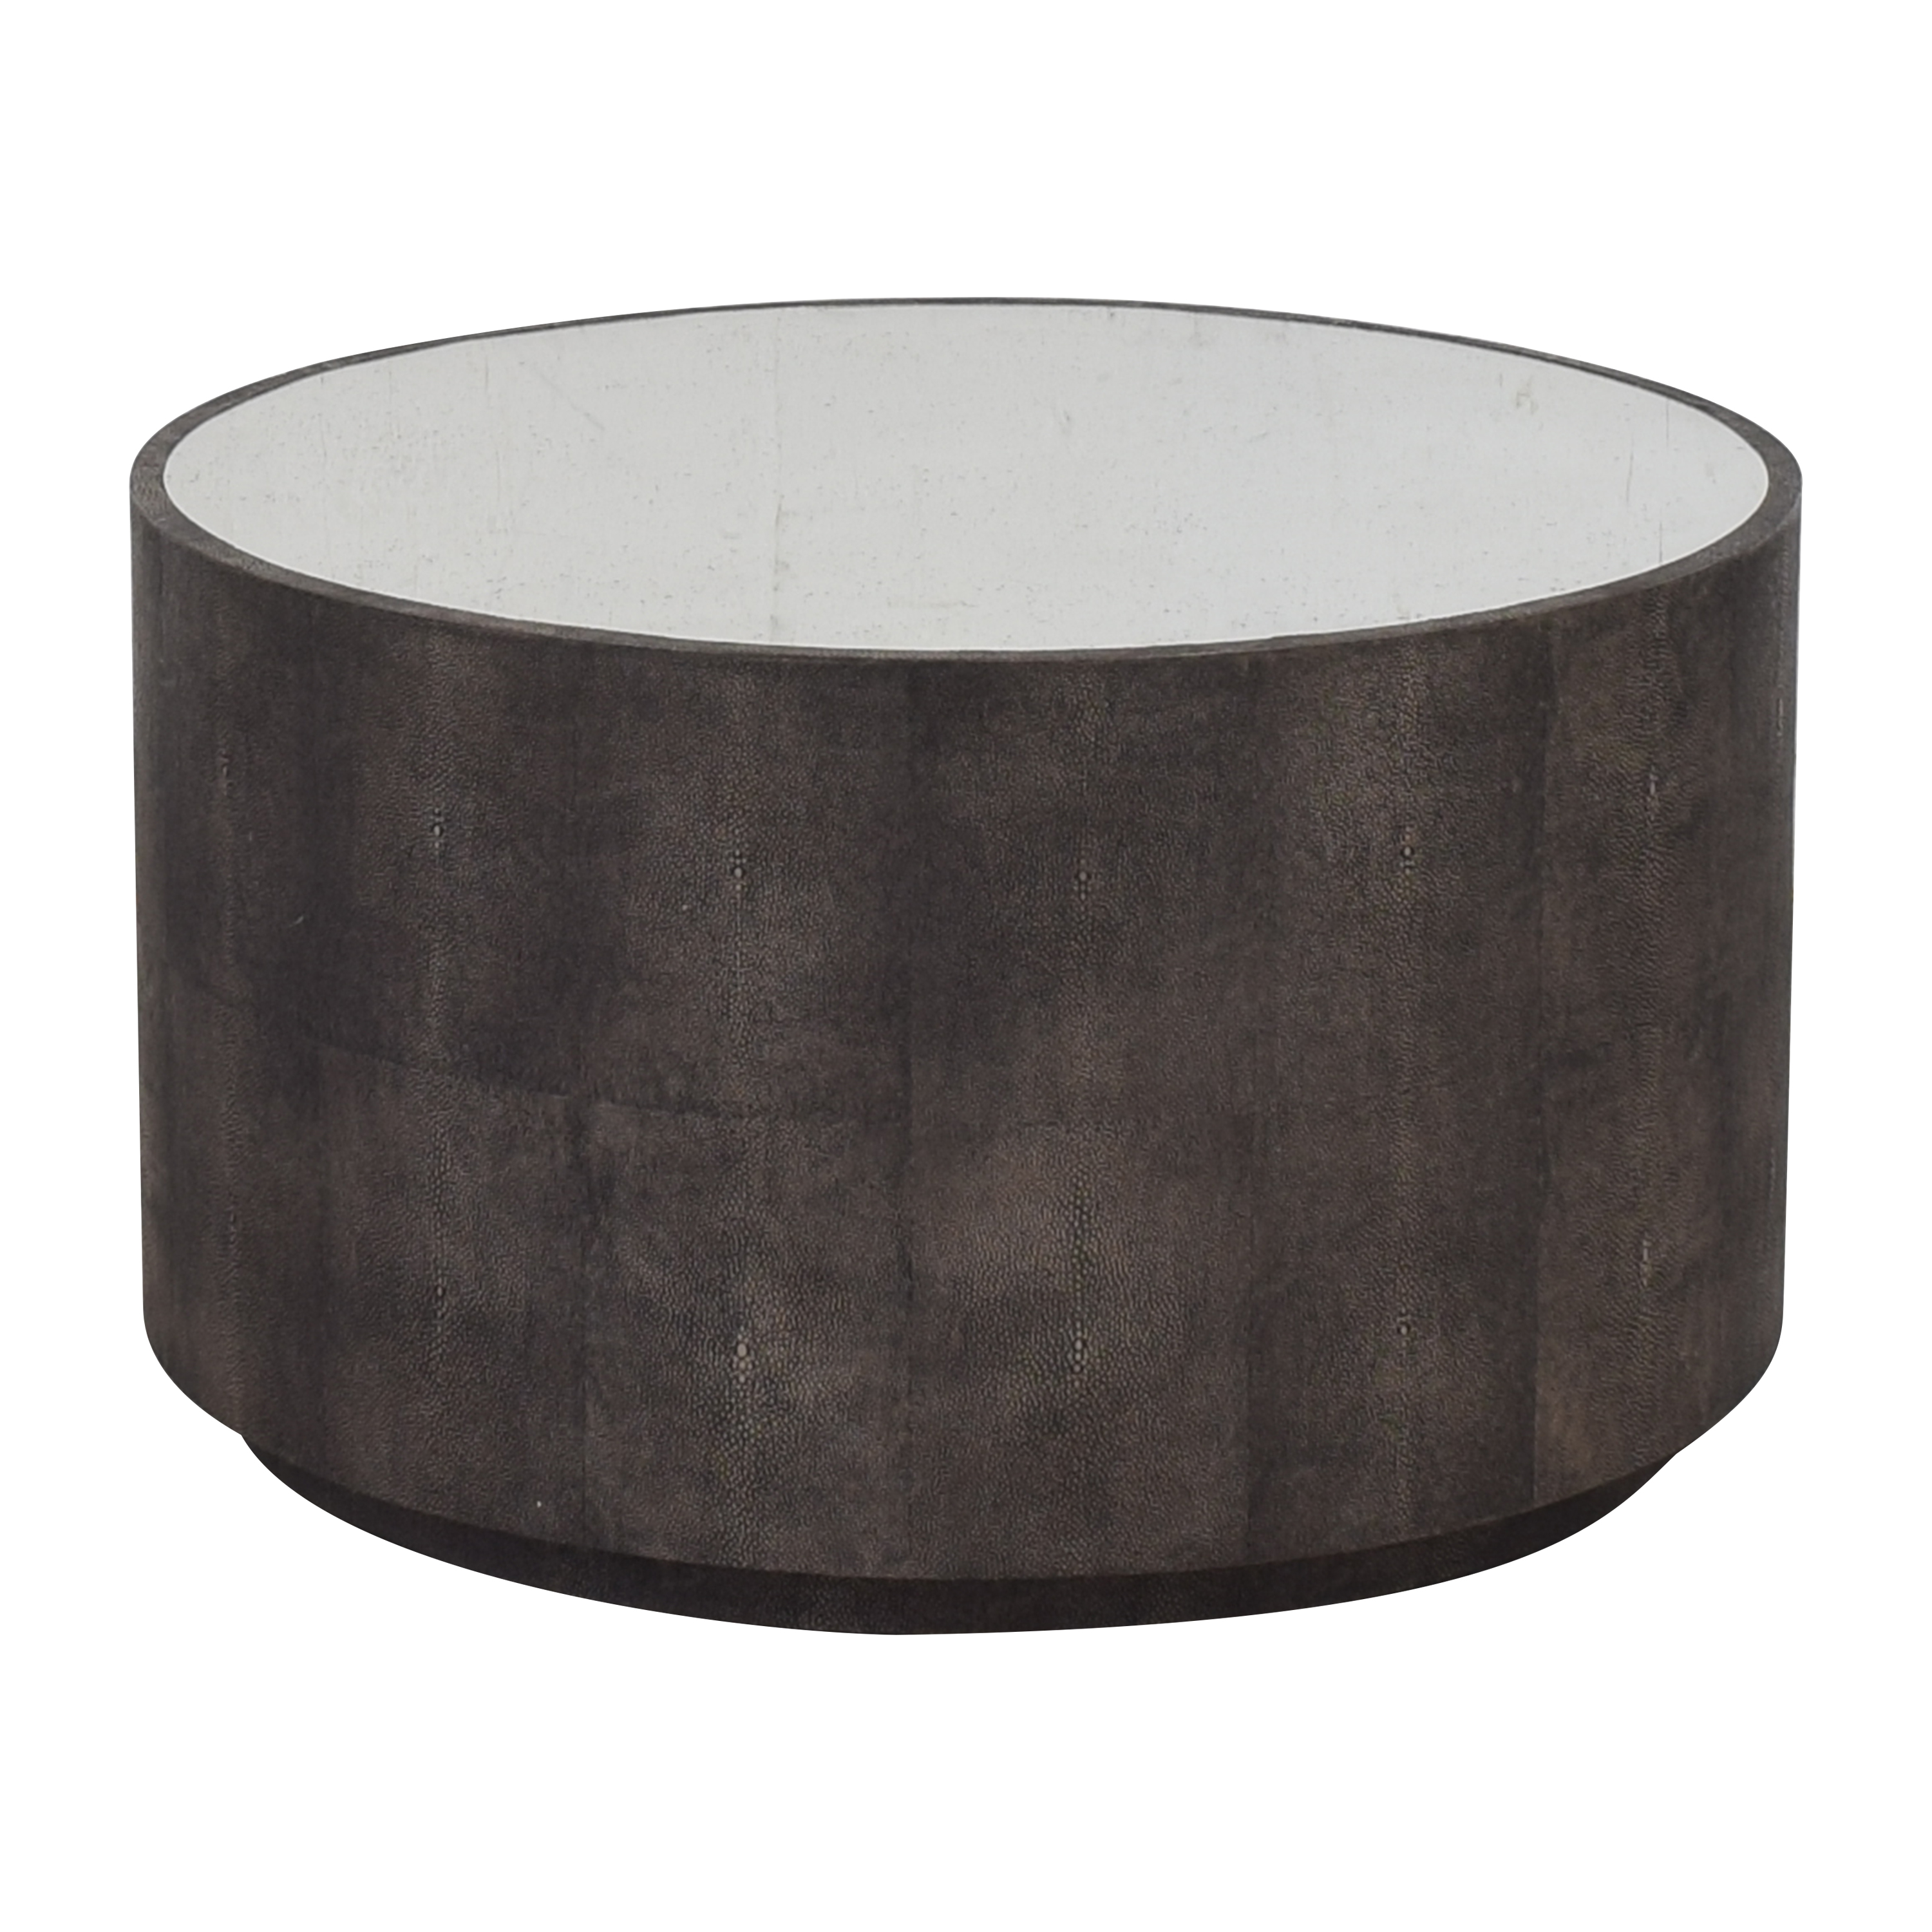 Mecox Gardens Mecox Gardens Round Coffee Table second hand